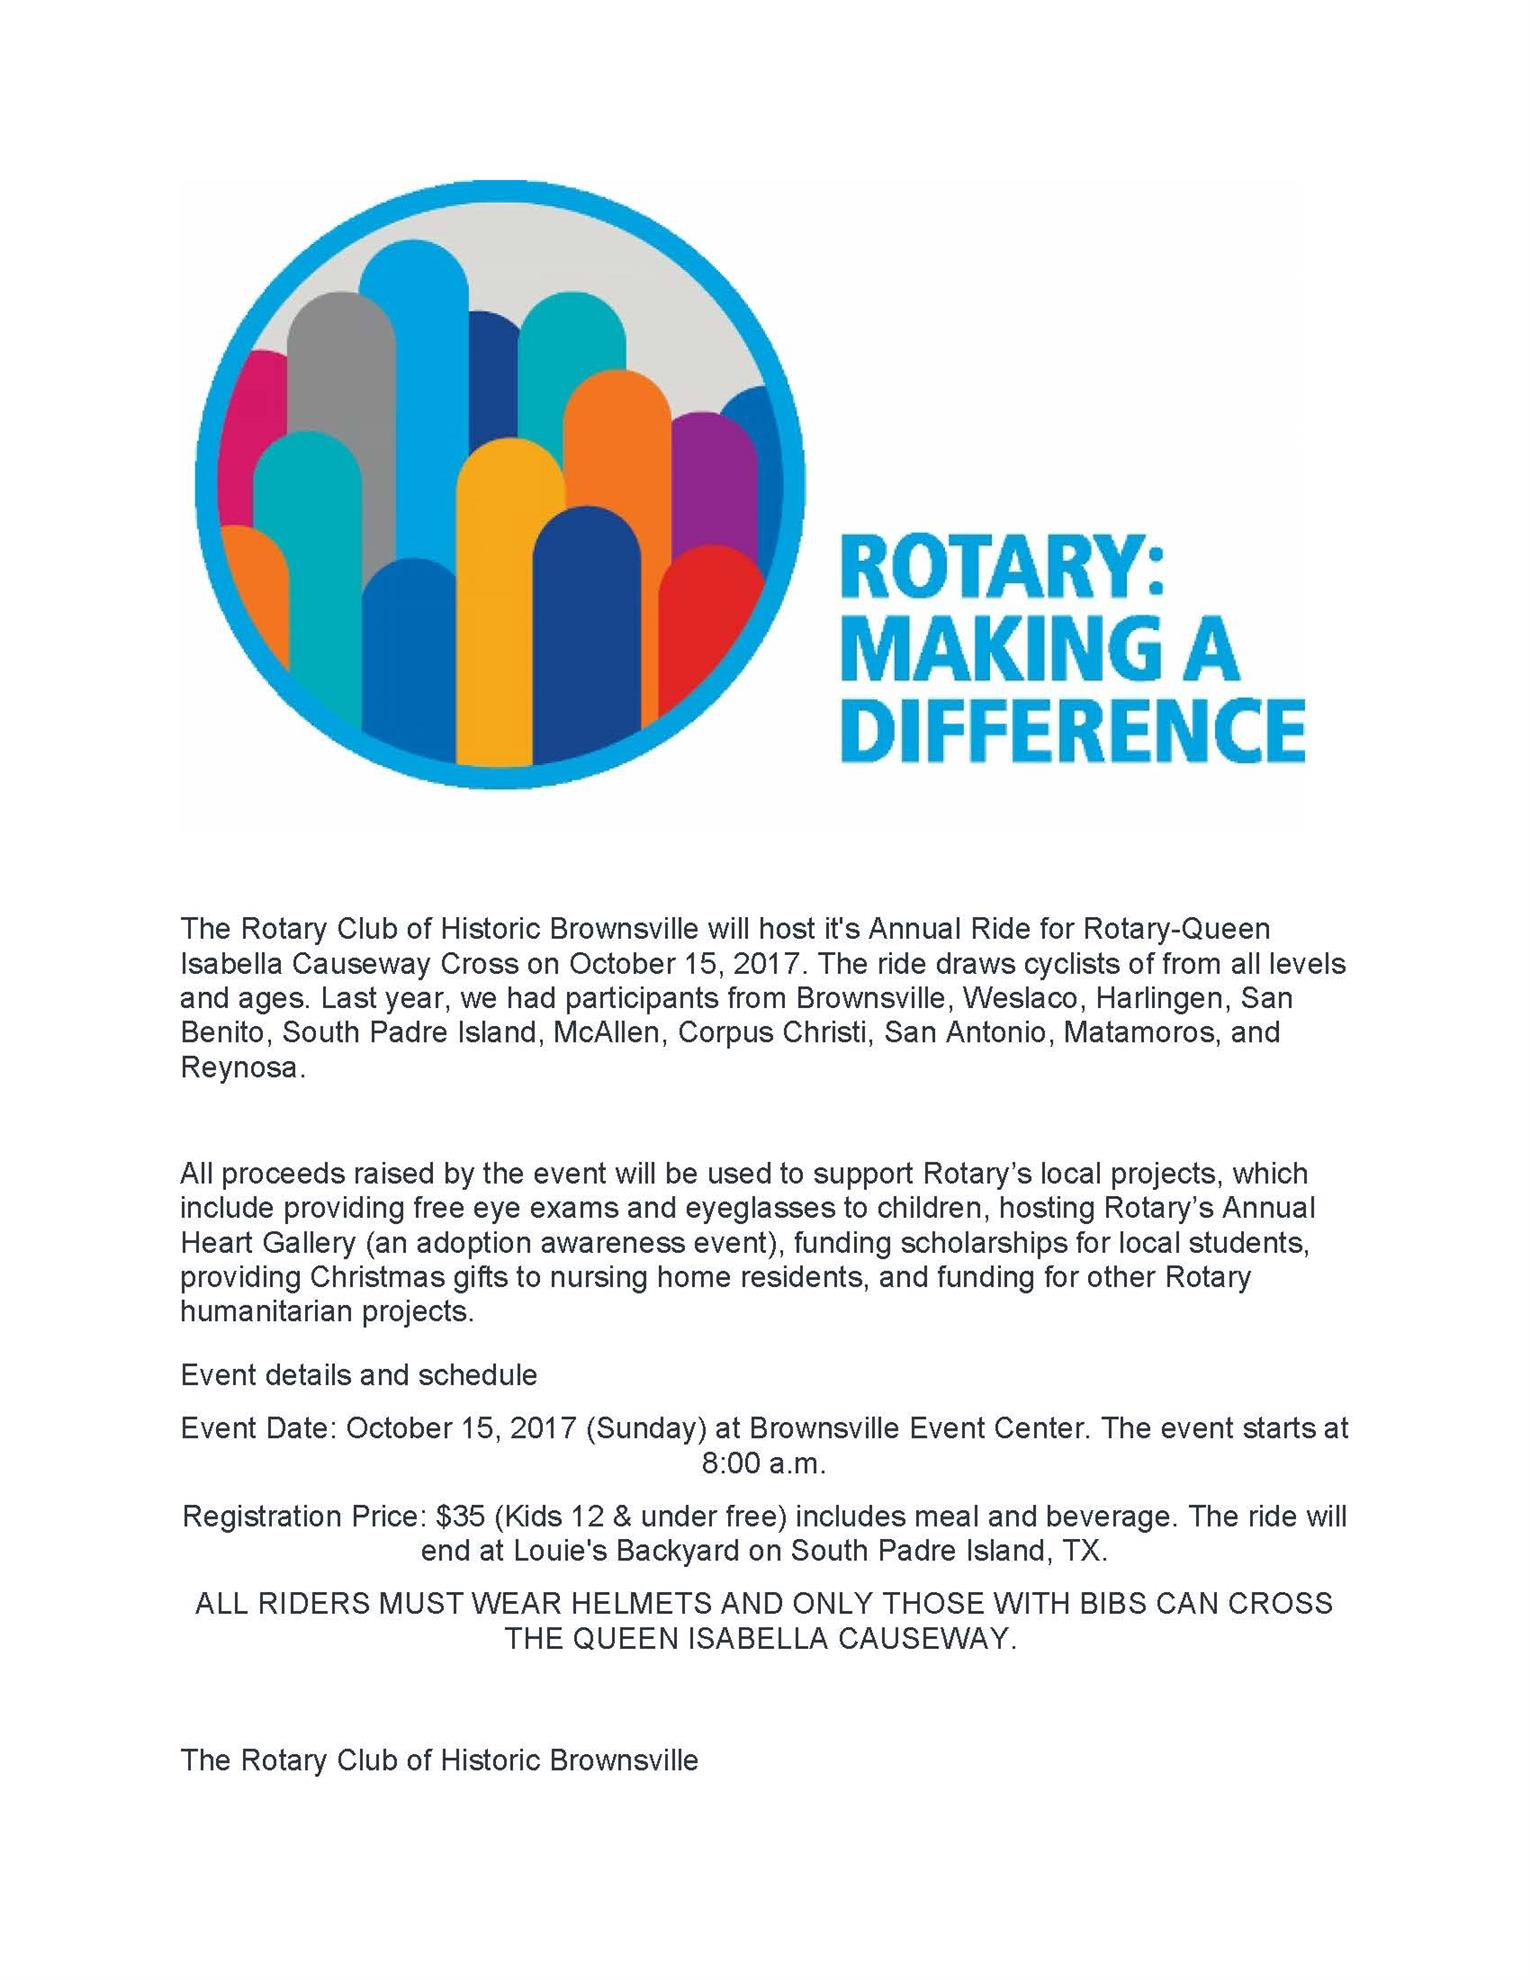 Ride For Rotary Queen Isabella Causeway Cross